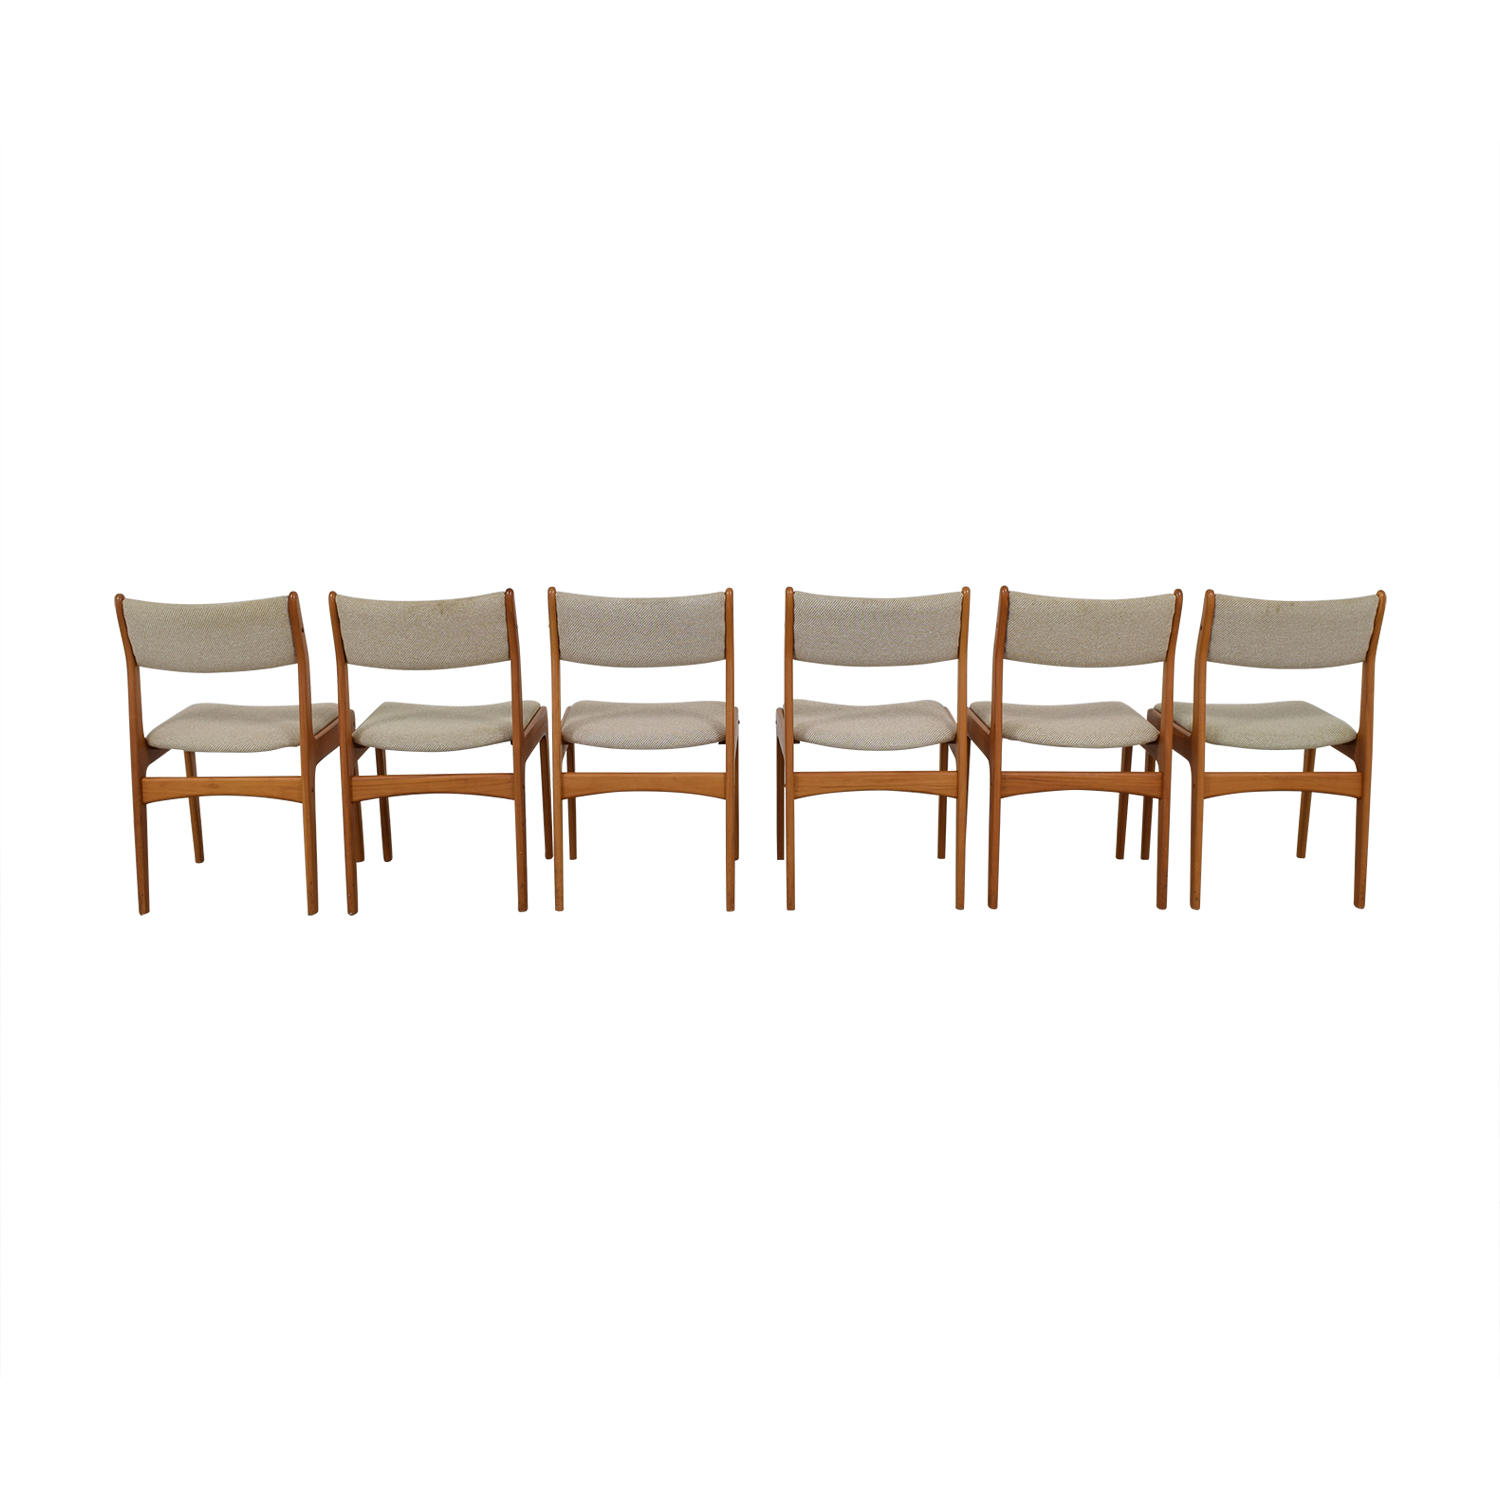 Wood and Beige Upholstered Dining Chairs Dining Chairs